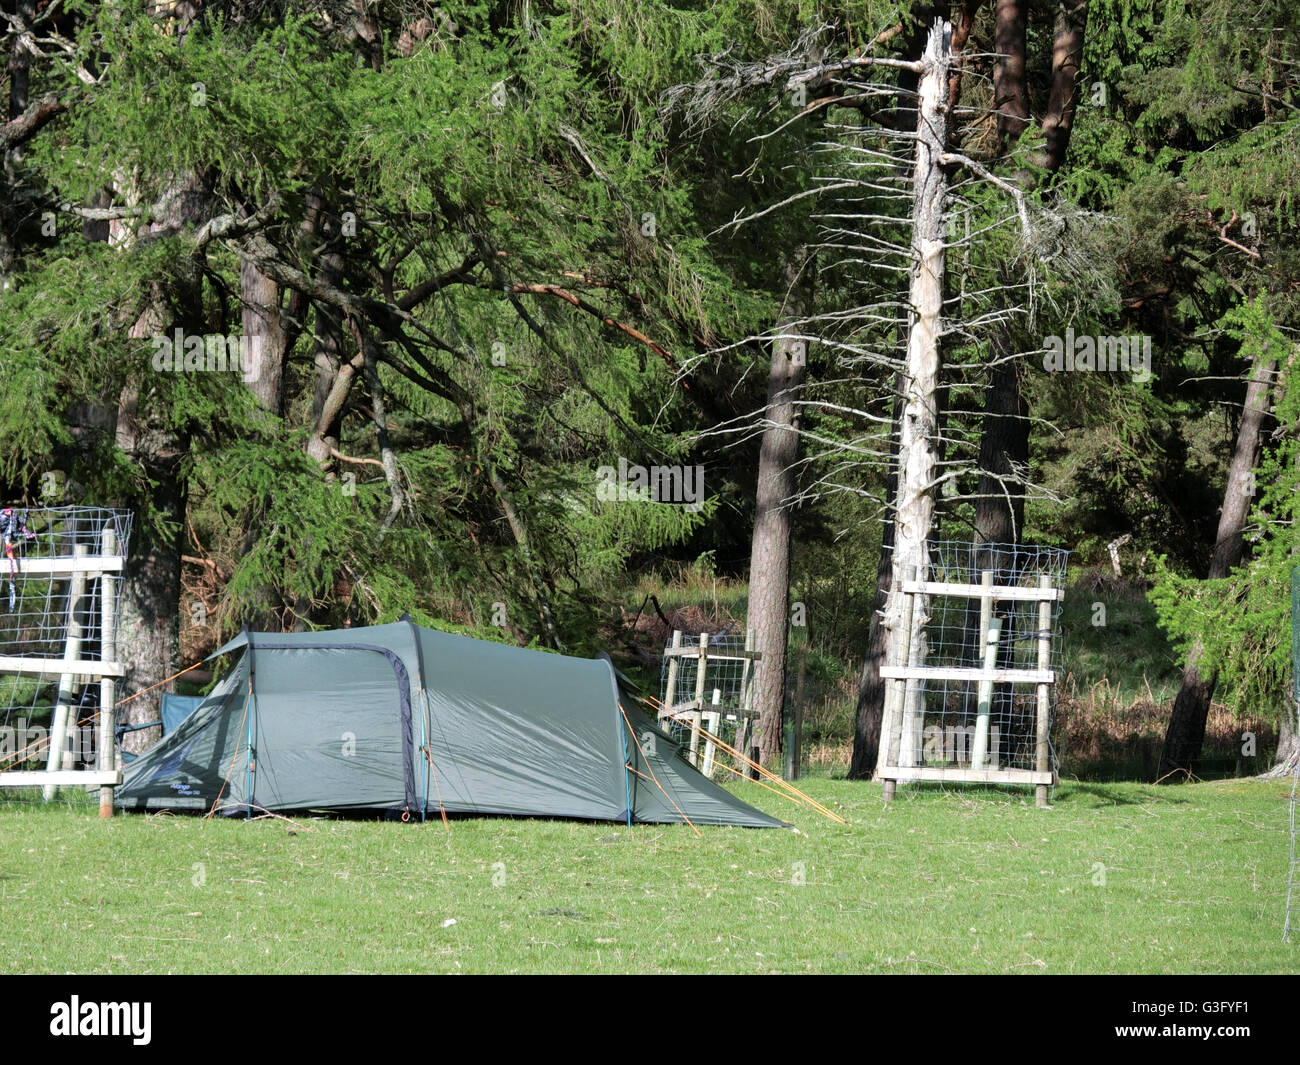 Canvas Tent On A Camping Holiday, March Wood, Upper Yarrow Valley, Borders, Scotland, UK - Stock Image